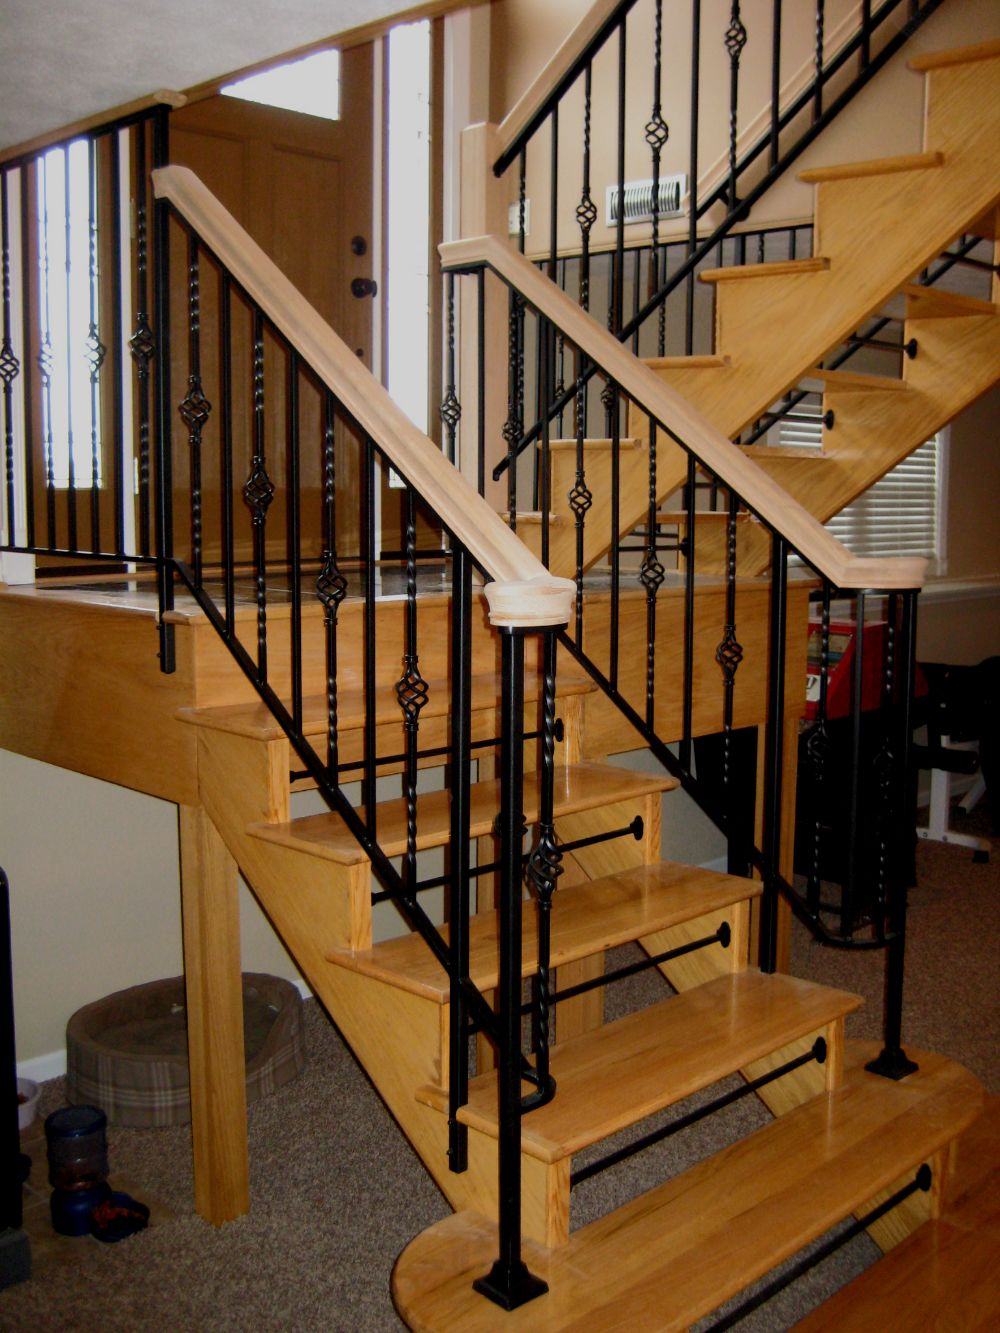 stair railing pictures - Google Search | Stair railing ...